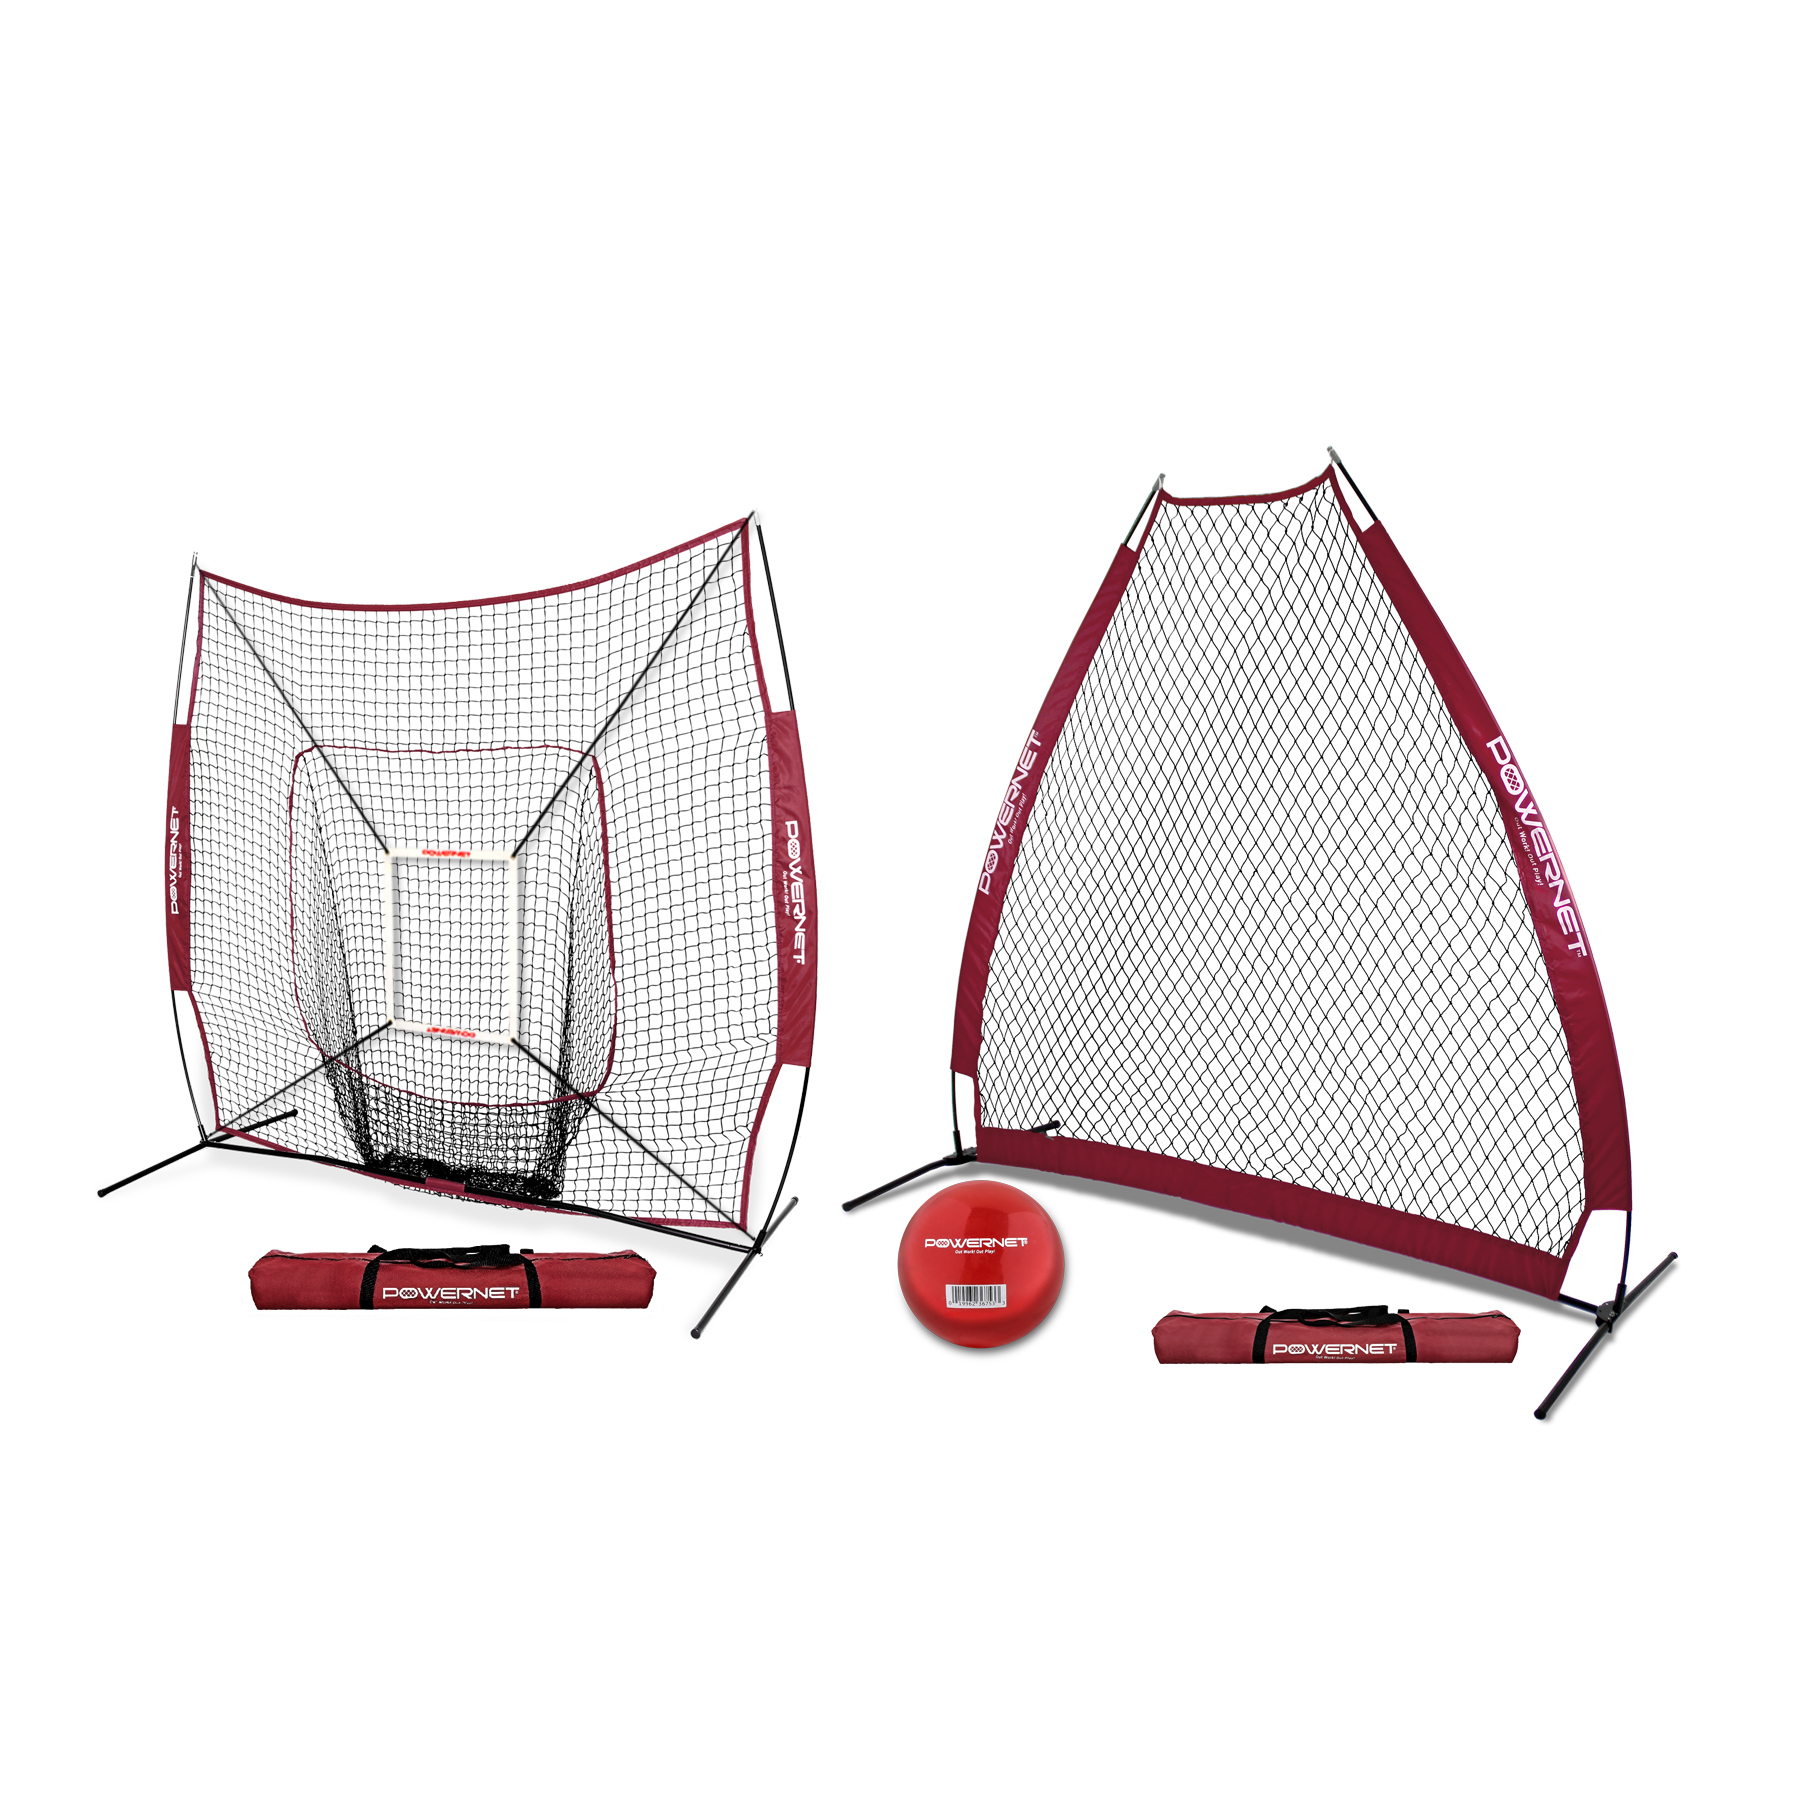 PowerNet 7x7 DLX Baseball Softball Practice Net Bundle with Portable A-Frame Pitching Screen